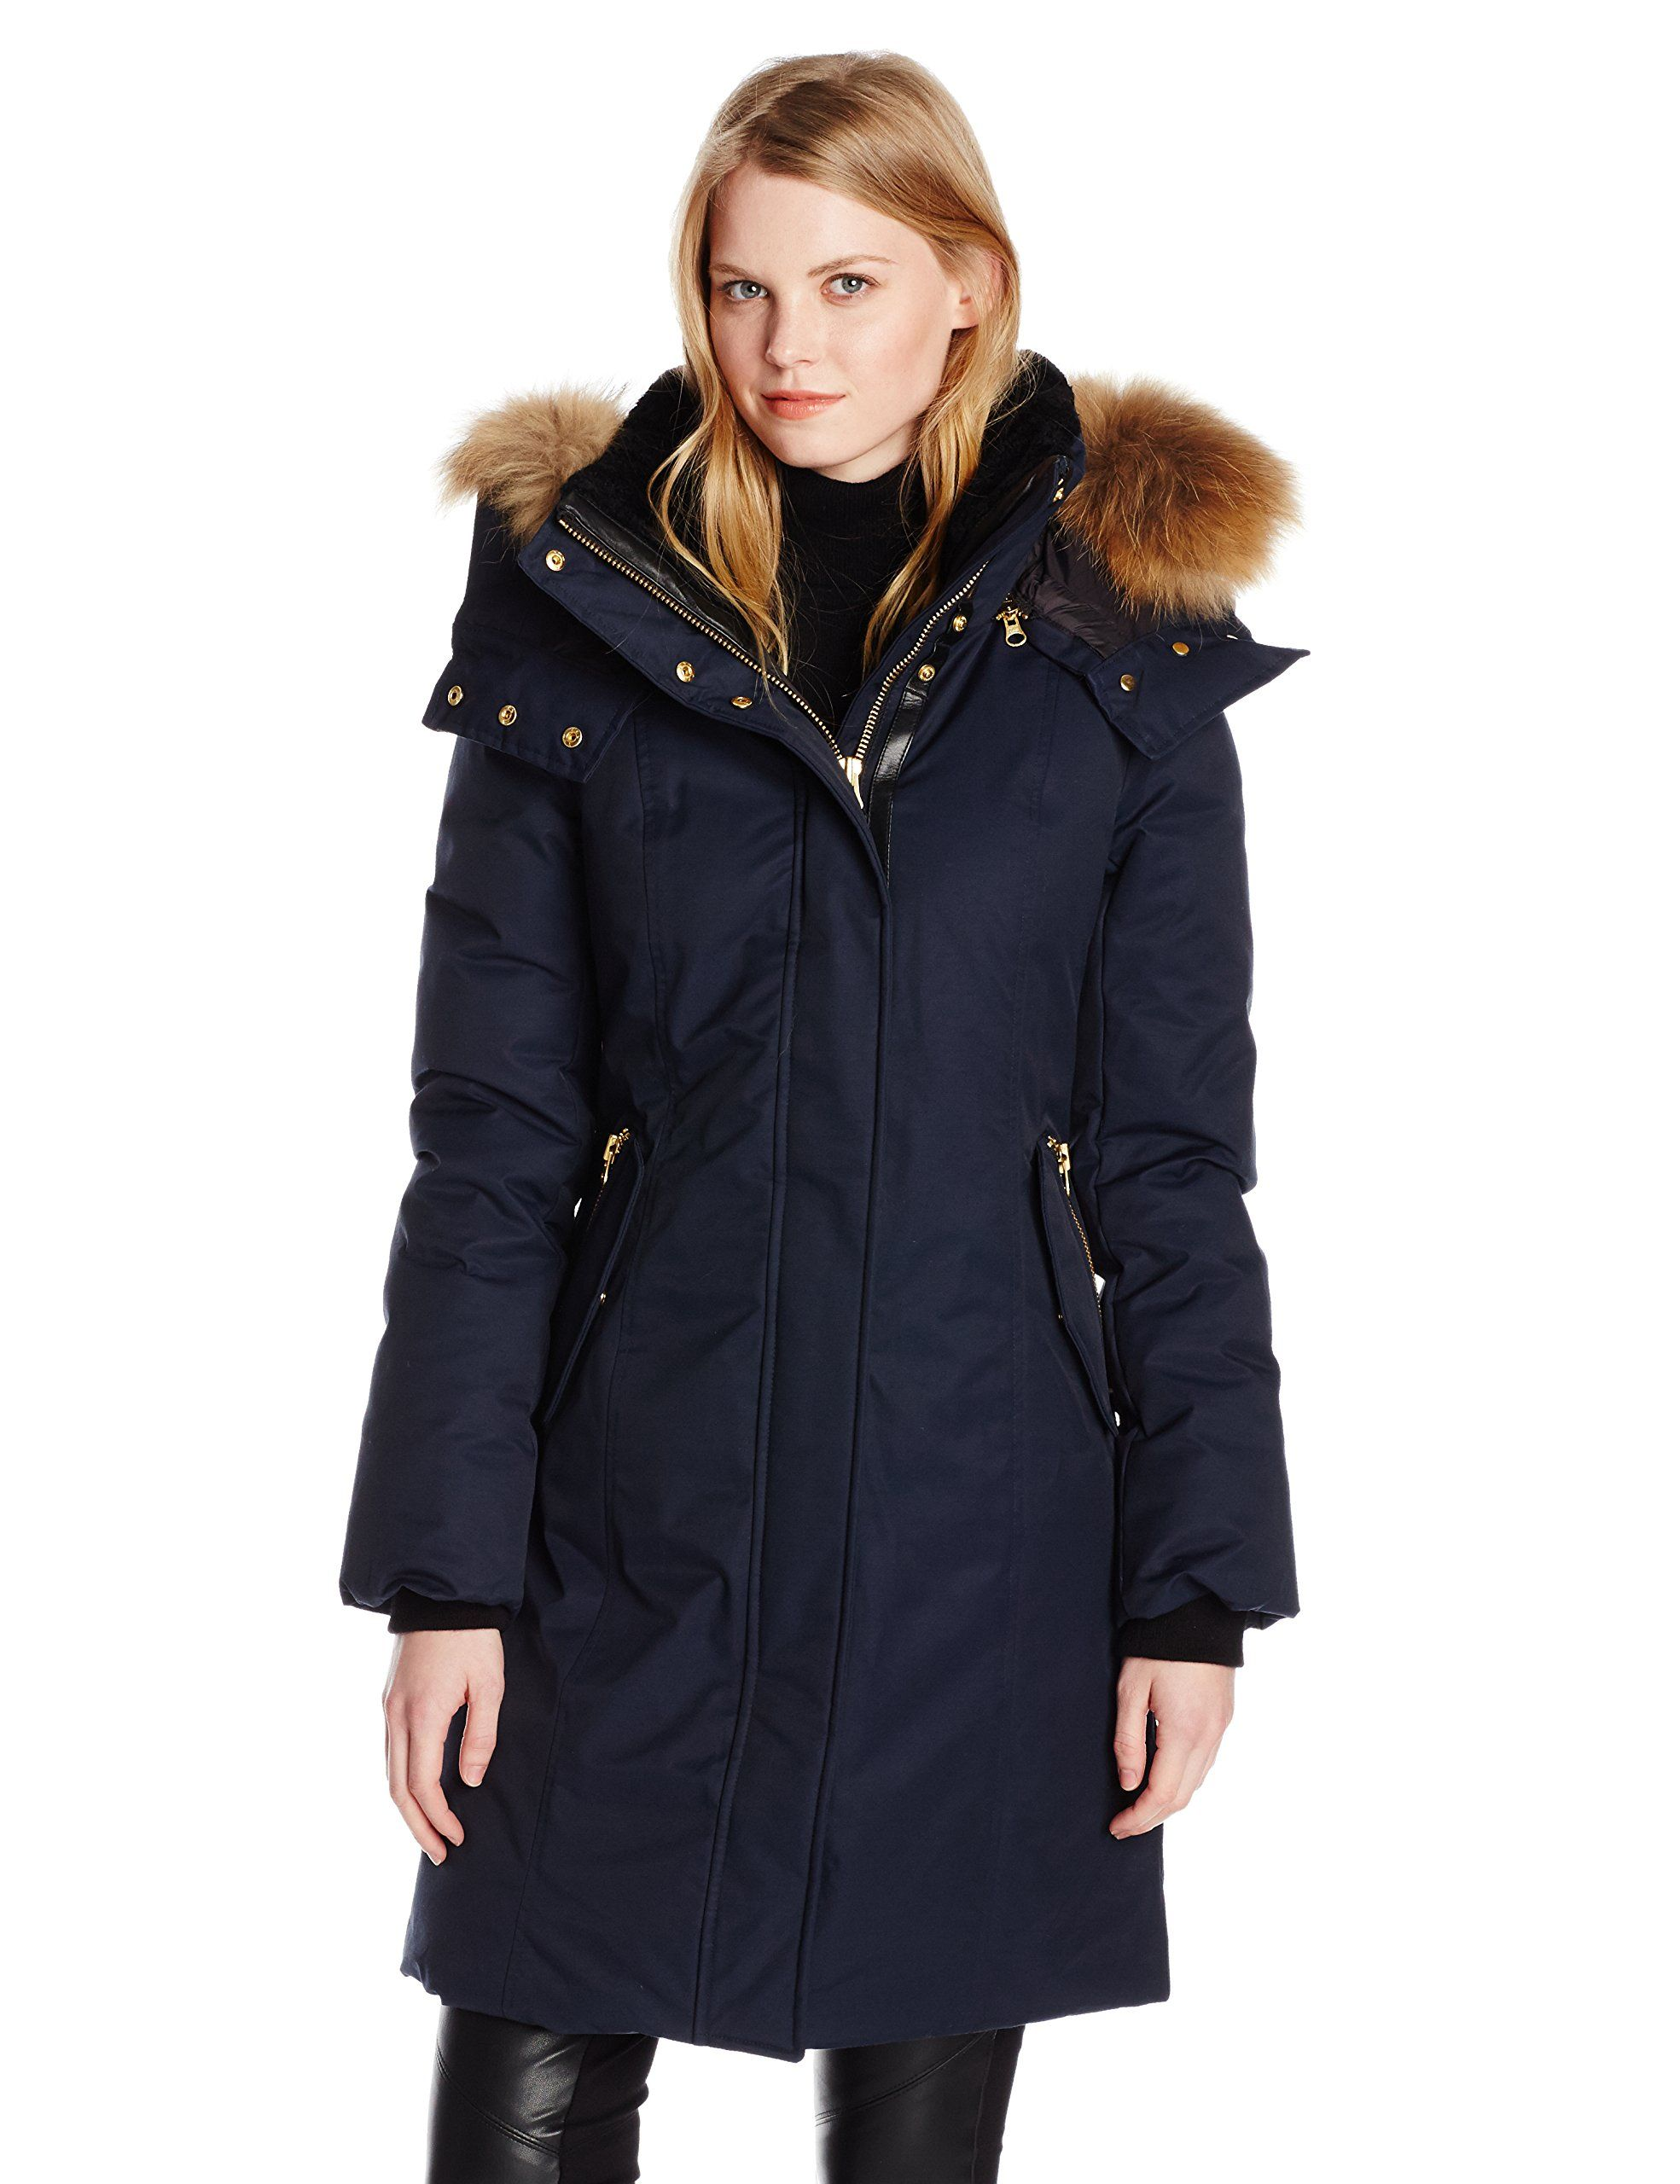 Mackage Women's Kerry Down Coat with Fur Hood at Amazon Women's Coats Shop  - Navy